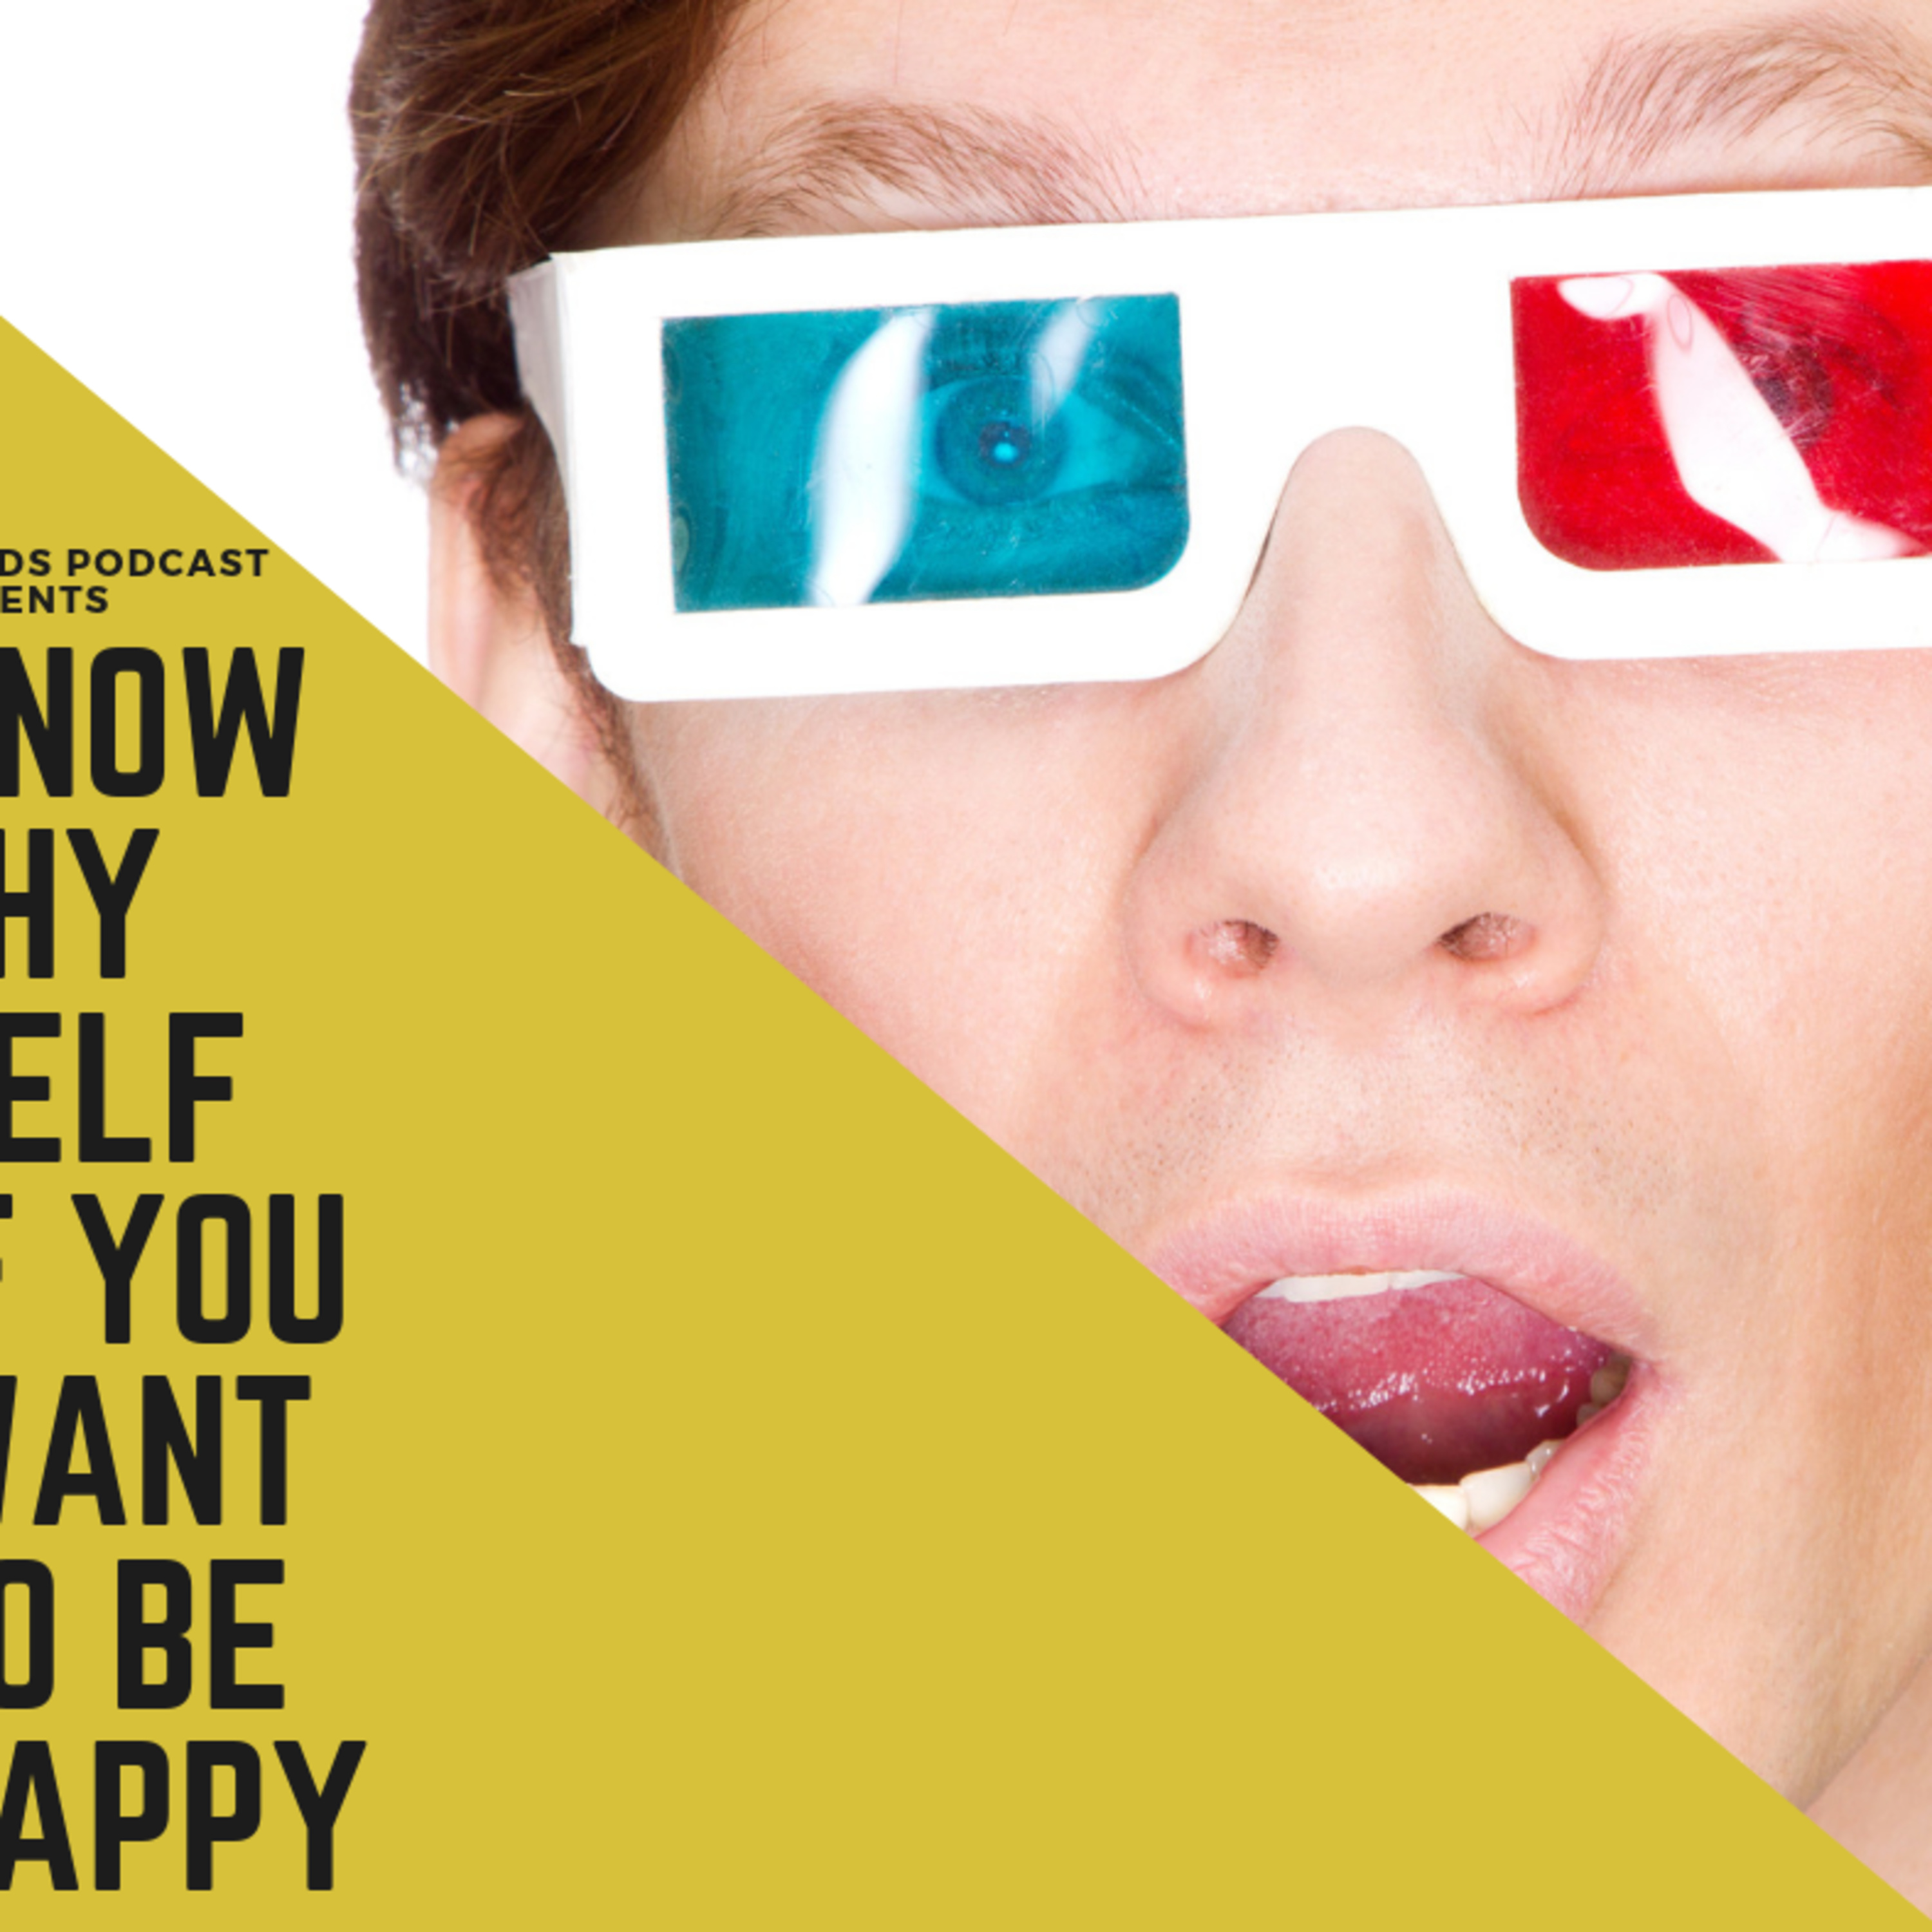 know thyself if you want to be happy